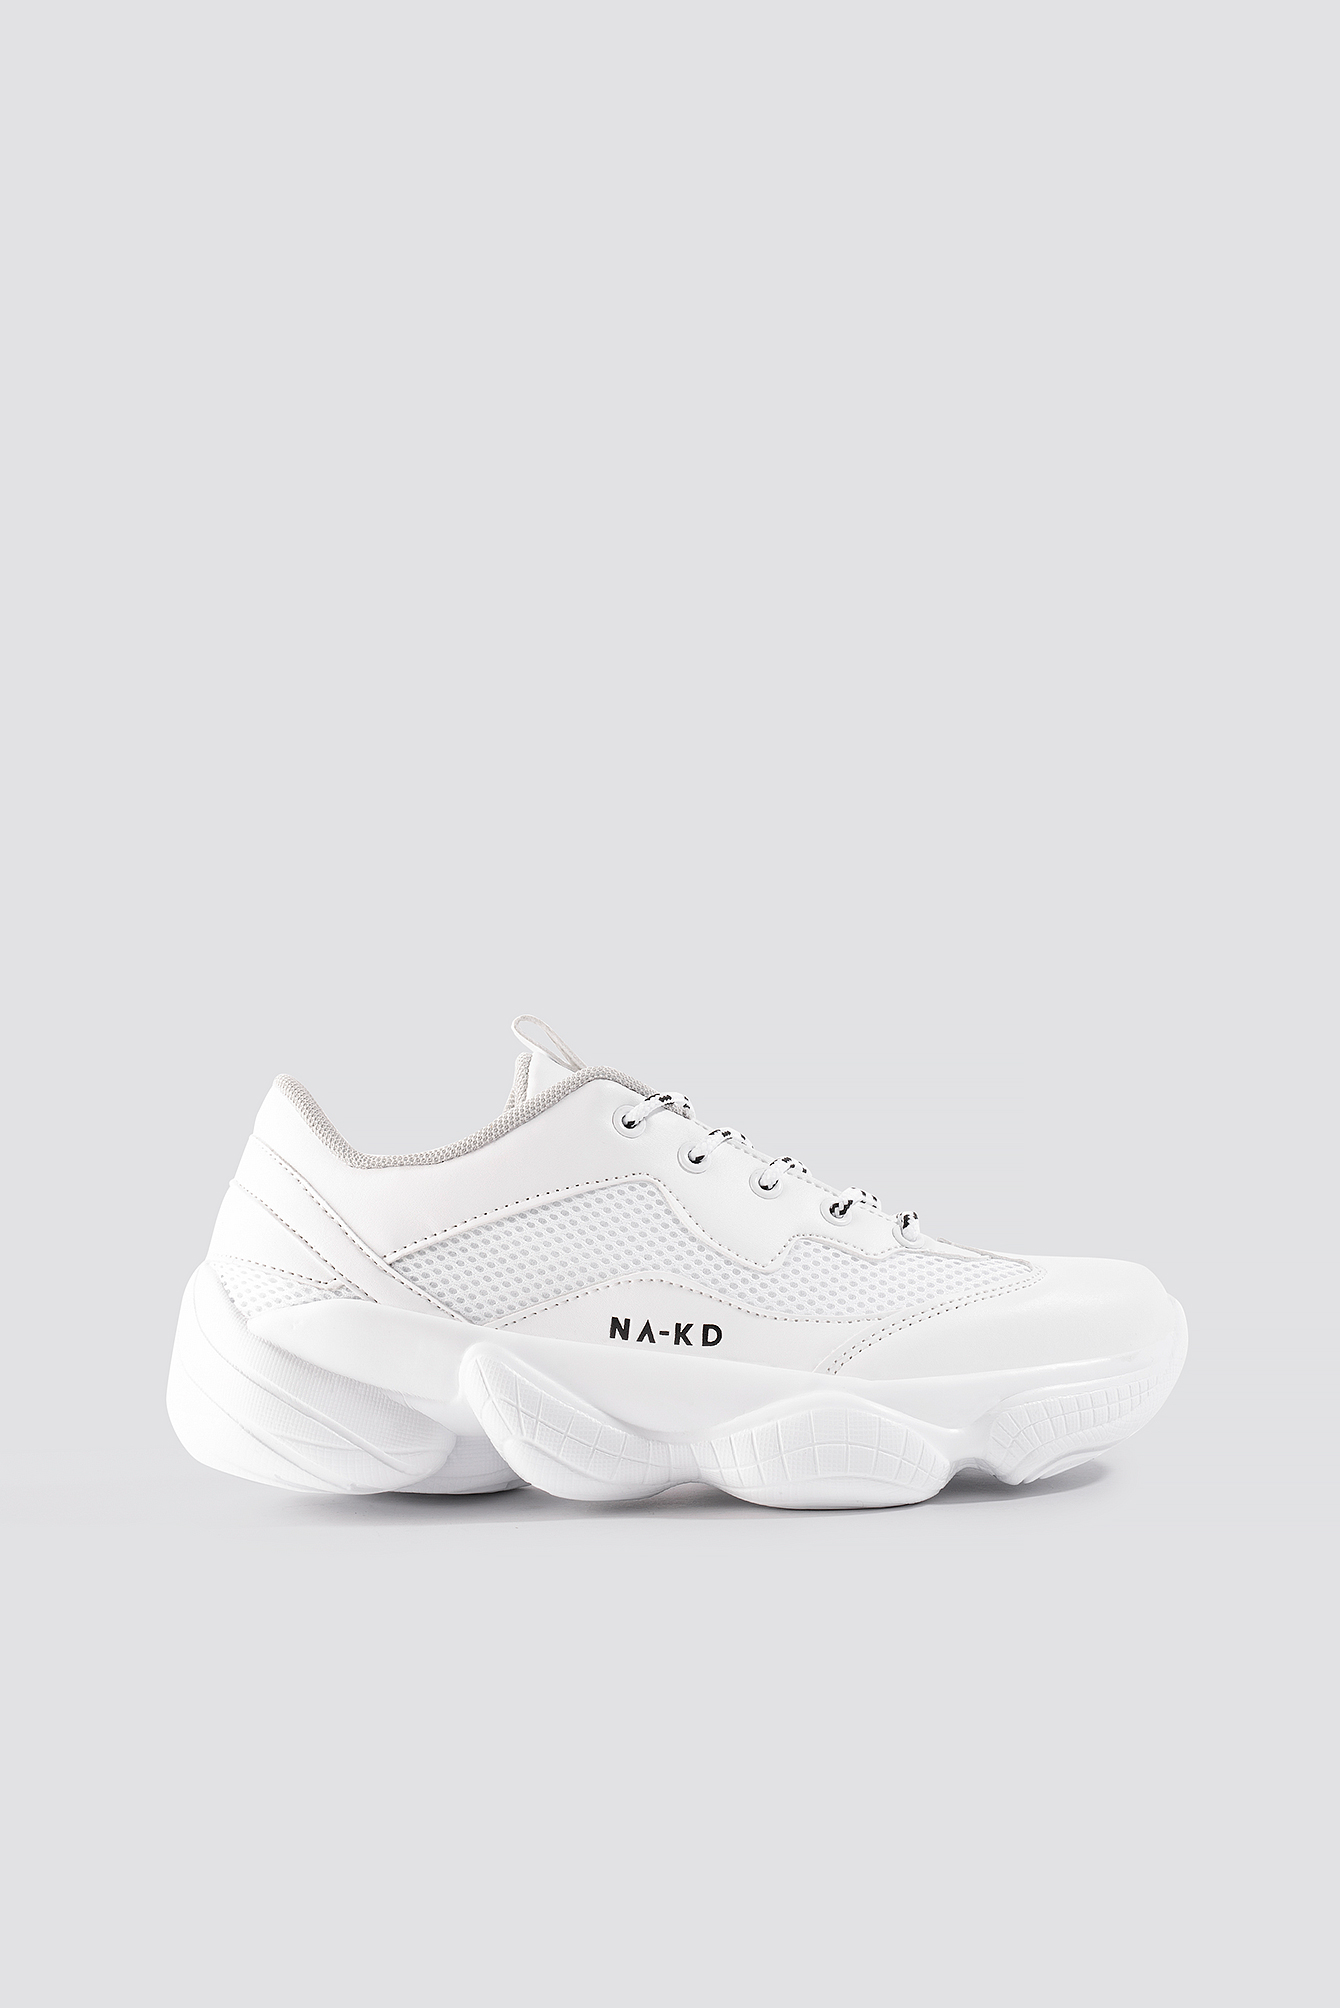 na-kd shoes -  Lambo Sneaker - White